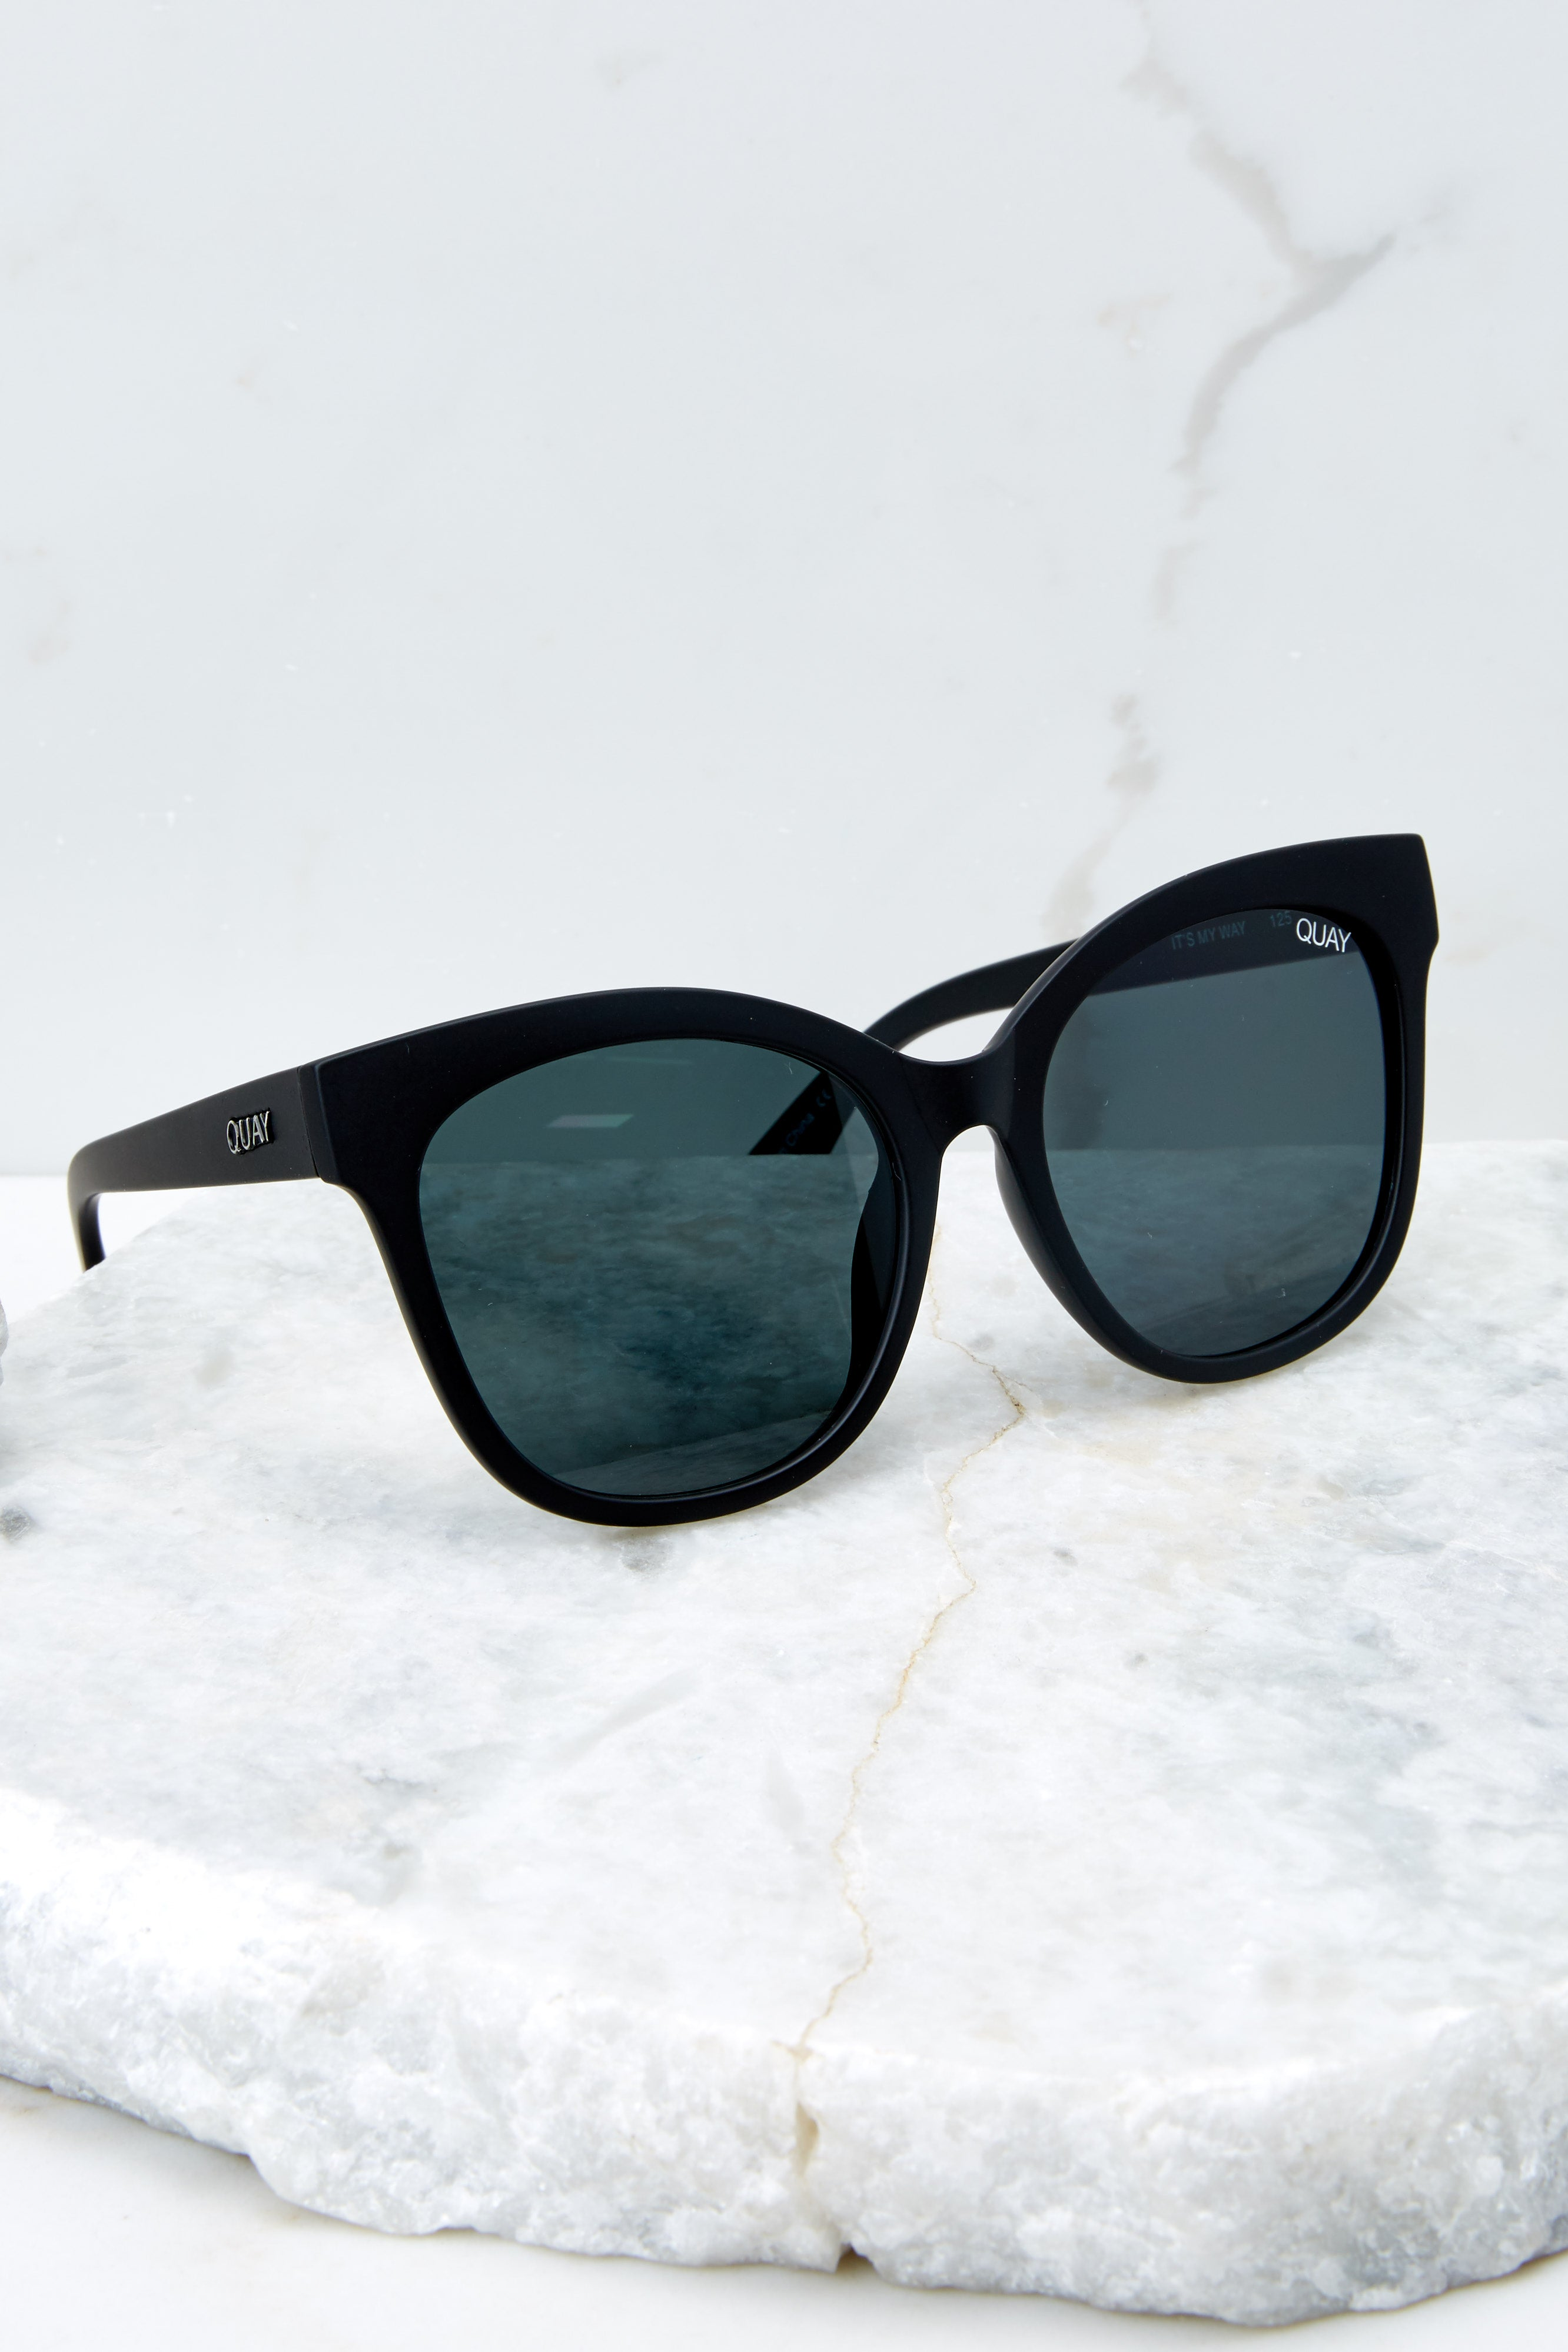 63576363e8 Quay It s My Way Sunglasses - Oversized Black Sunnies - Glasses ...